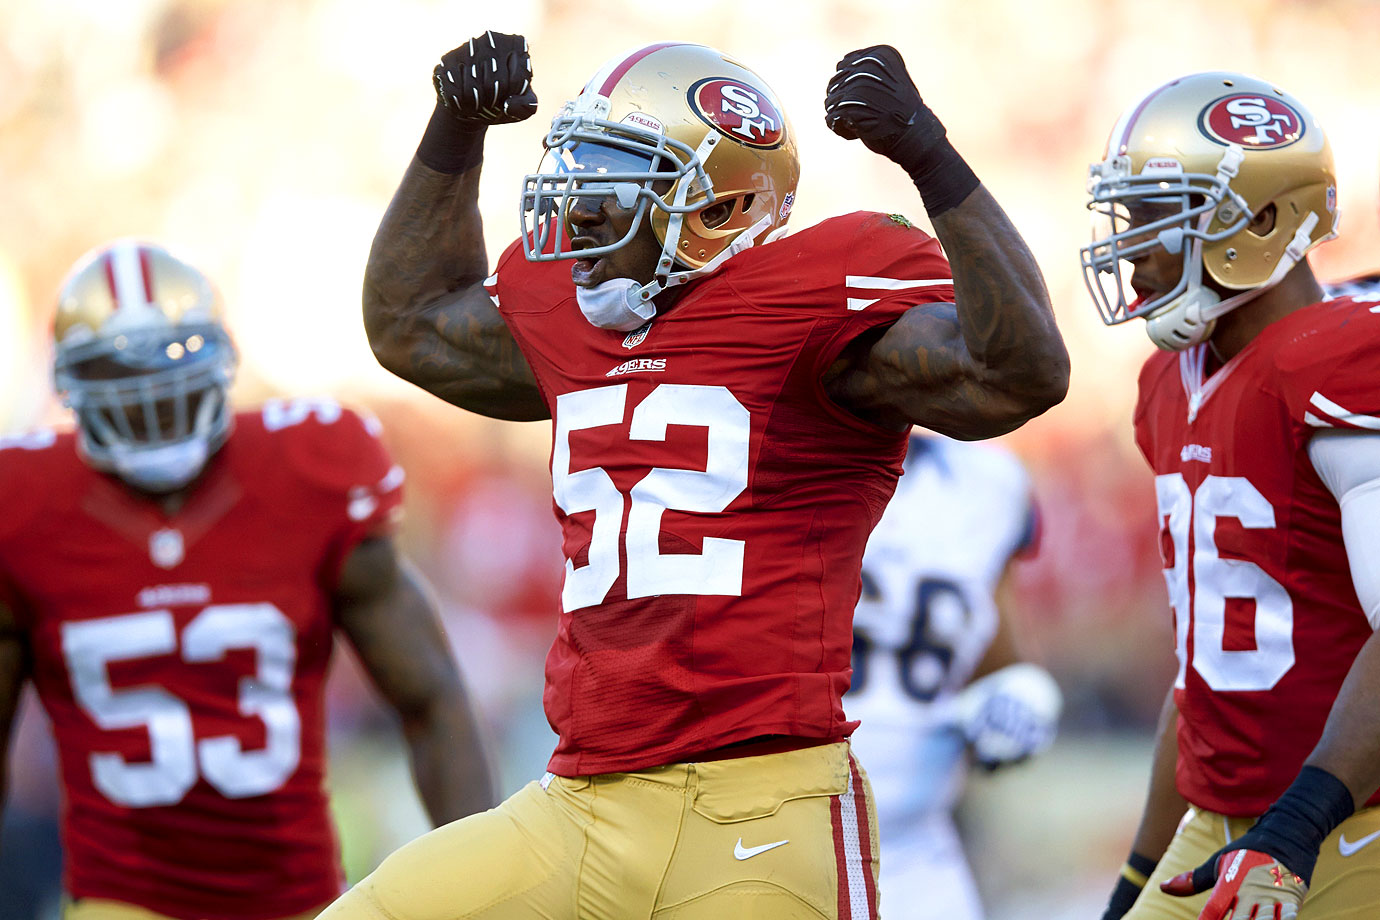 Seven-time Pro-Bowler Patrick Willis surprised the football world with his teary March 11 retirement announcement. The 49ers linebacker called it quits after only eight seasons, following a 2014 campaign in which a toe injury forced him to miss all but six games. The captain and anchor of a daunting San Francisco defense, he retired with 732 tackles, five All-Pro selections and an appearance in the 2013 Super Bowl.